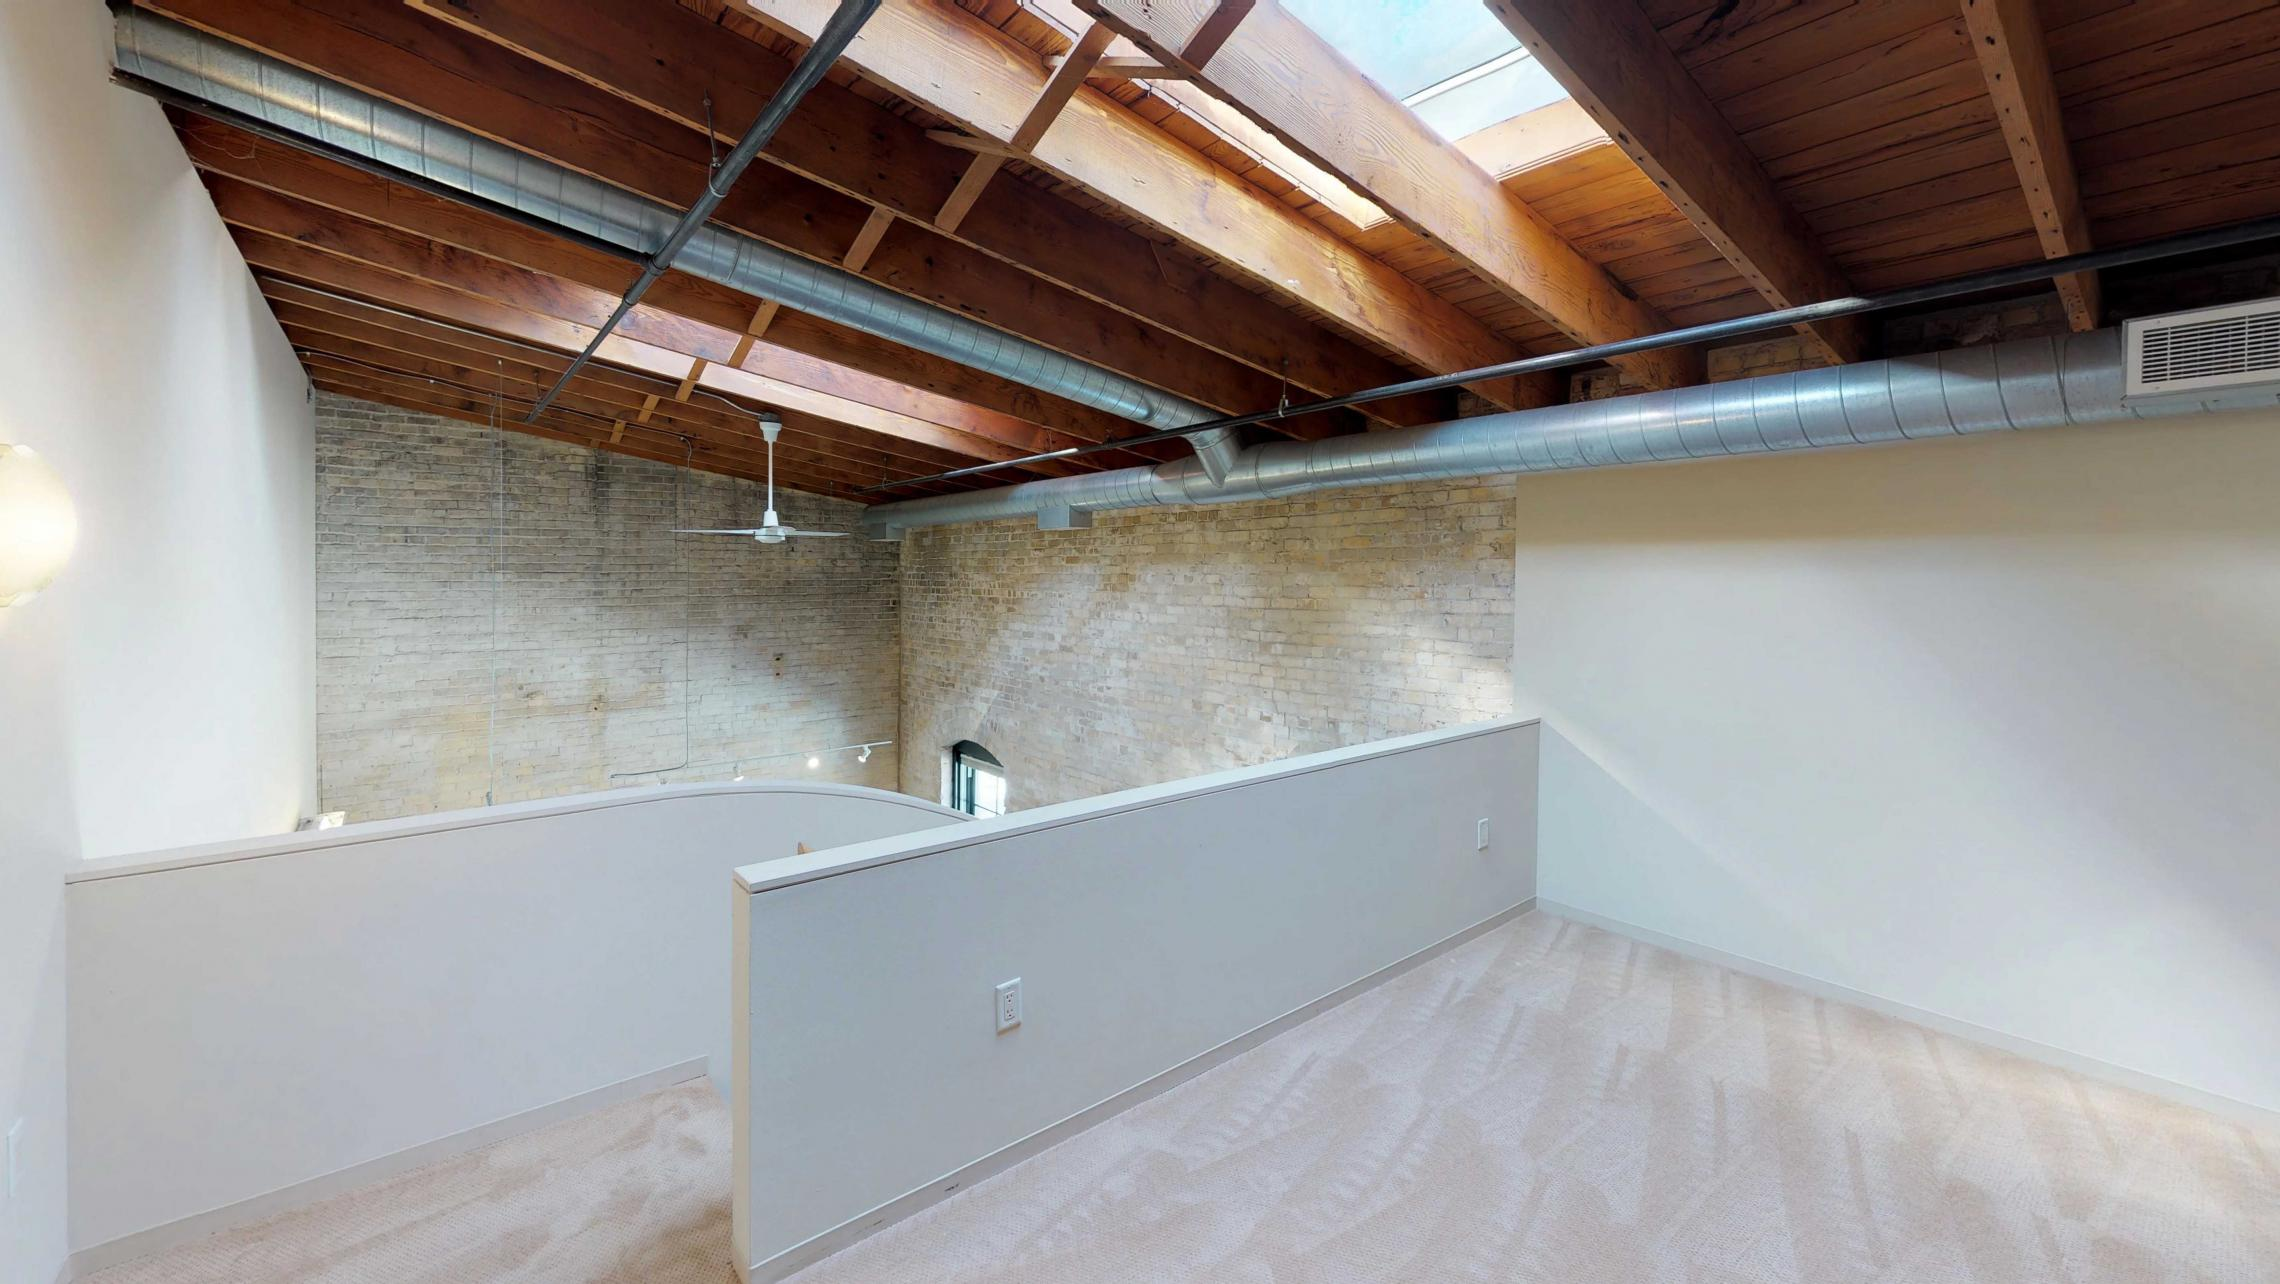 E307-Madison-Downtown-Lofted-Two-Bedroom-Vaulted-Ceiling-Exposures-Luxury-Skylight-Tobacco-Lofts